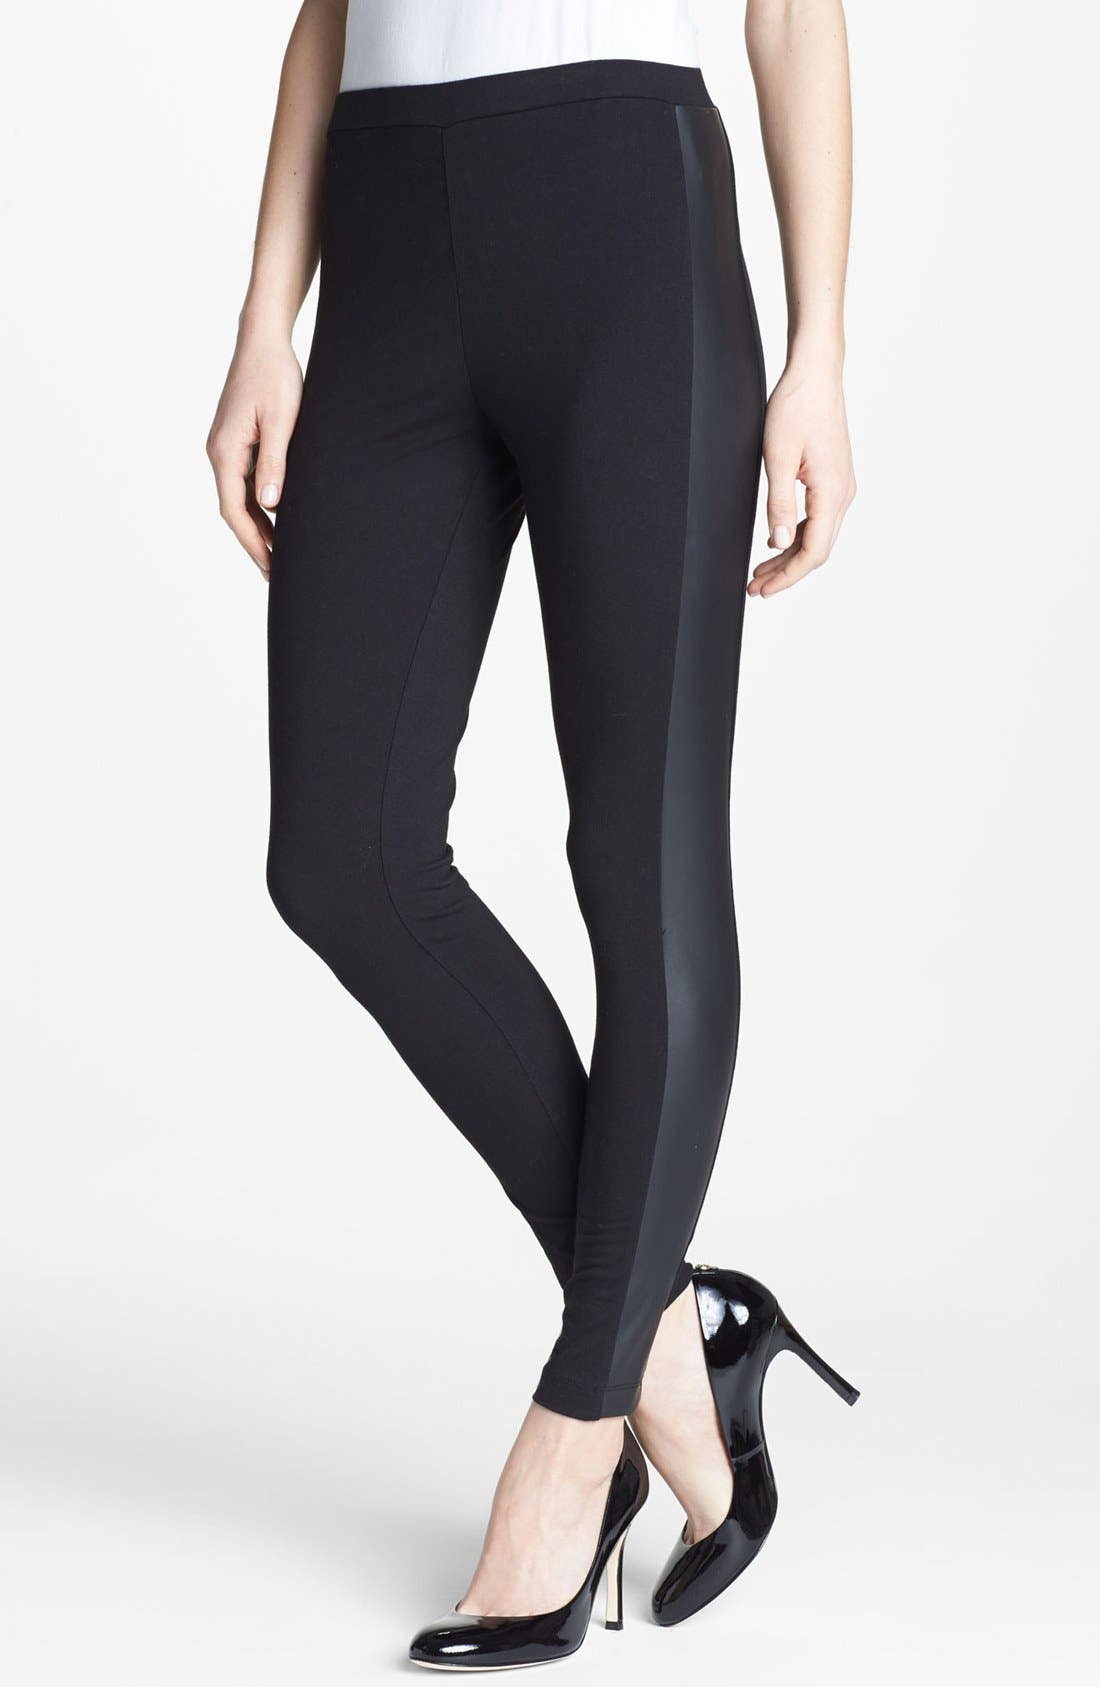 Main Image - Two by Vince Camuto Faux Leather Trim Leggings